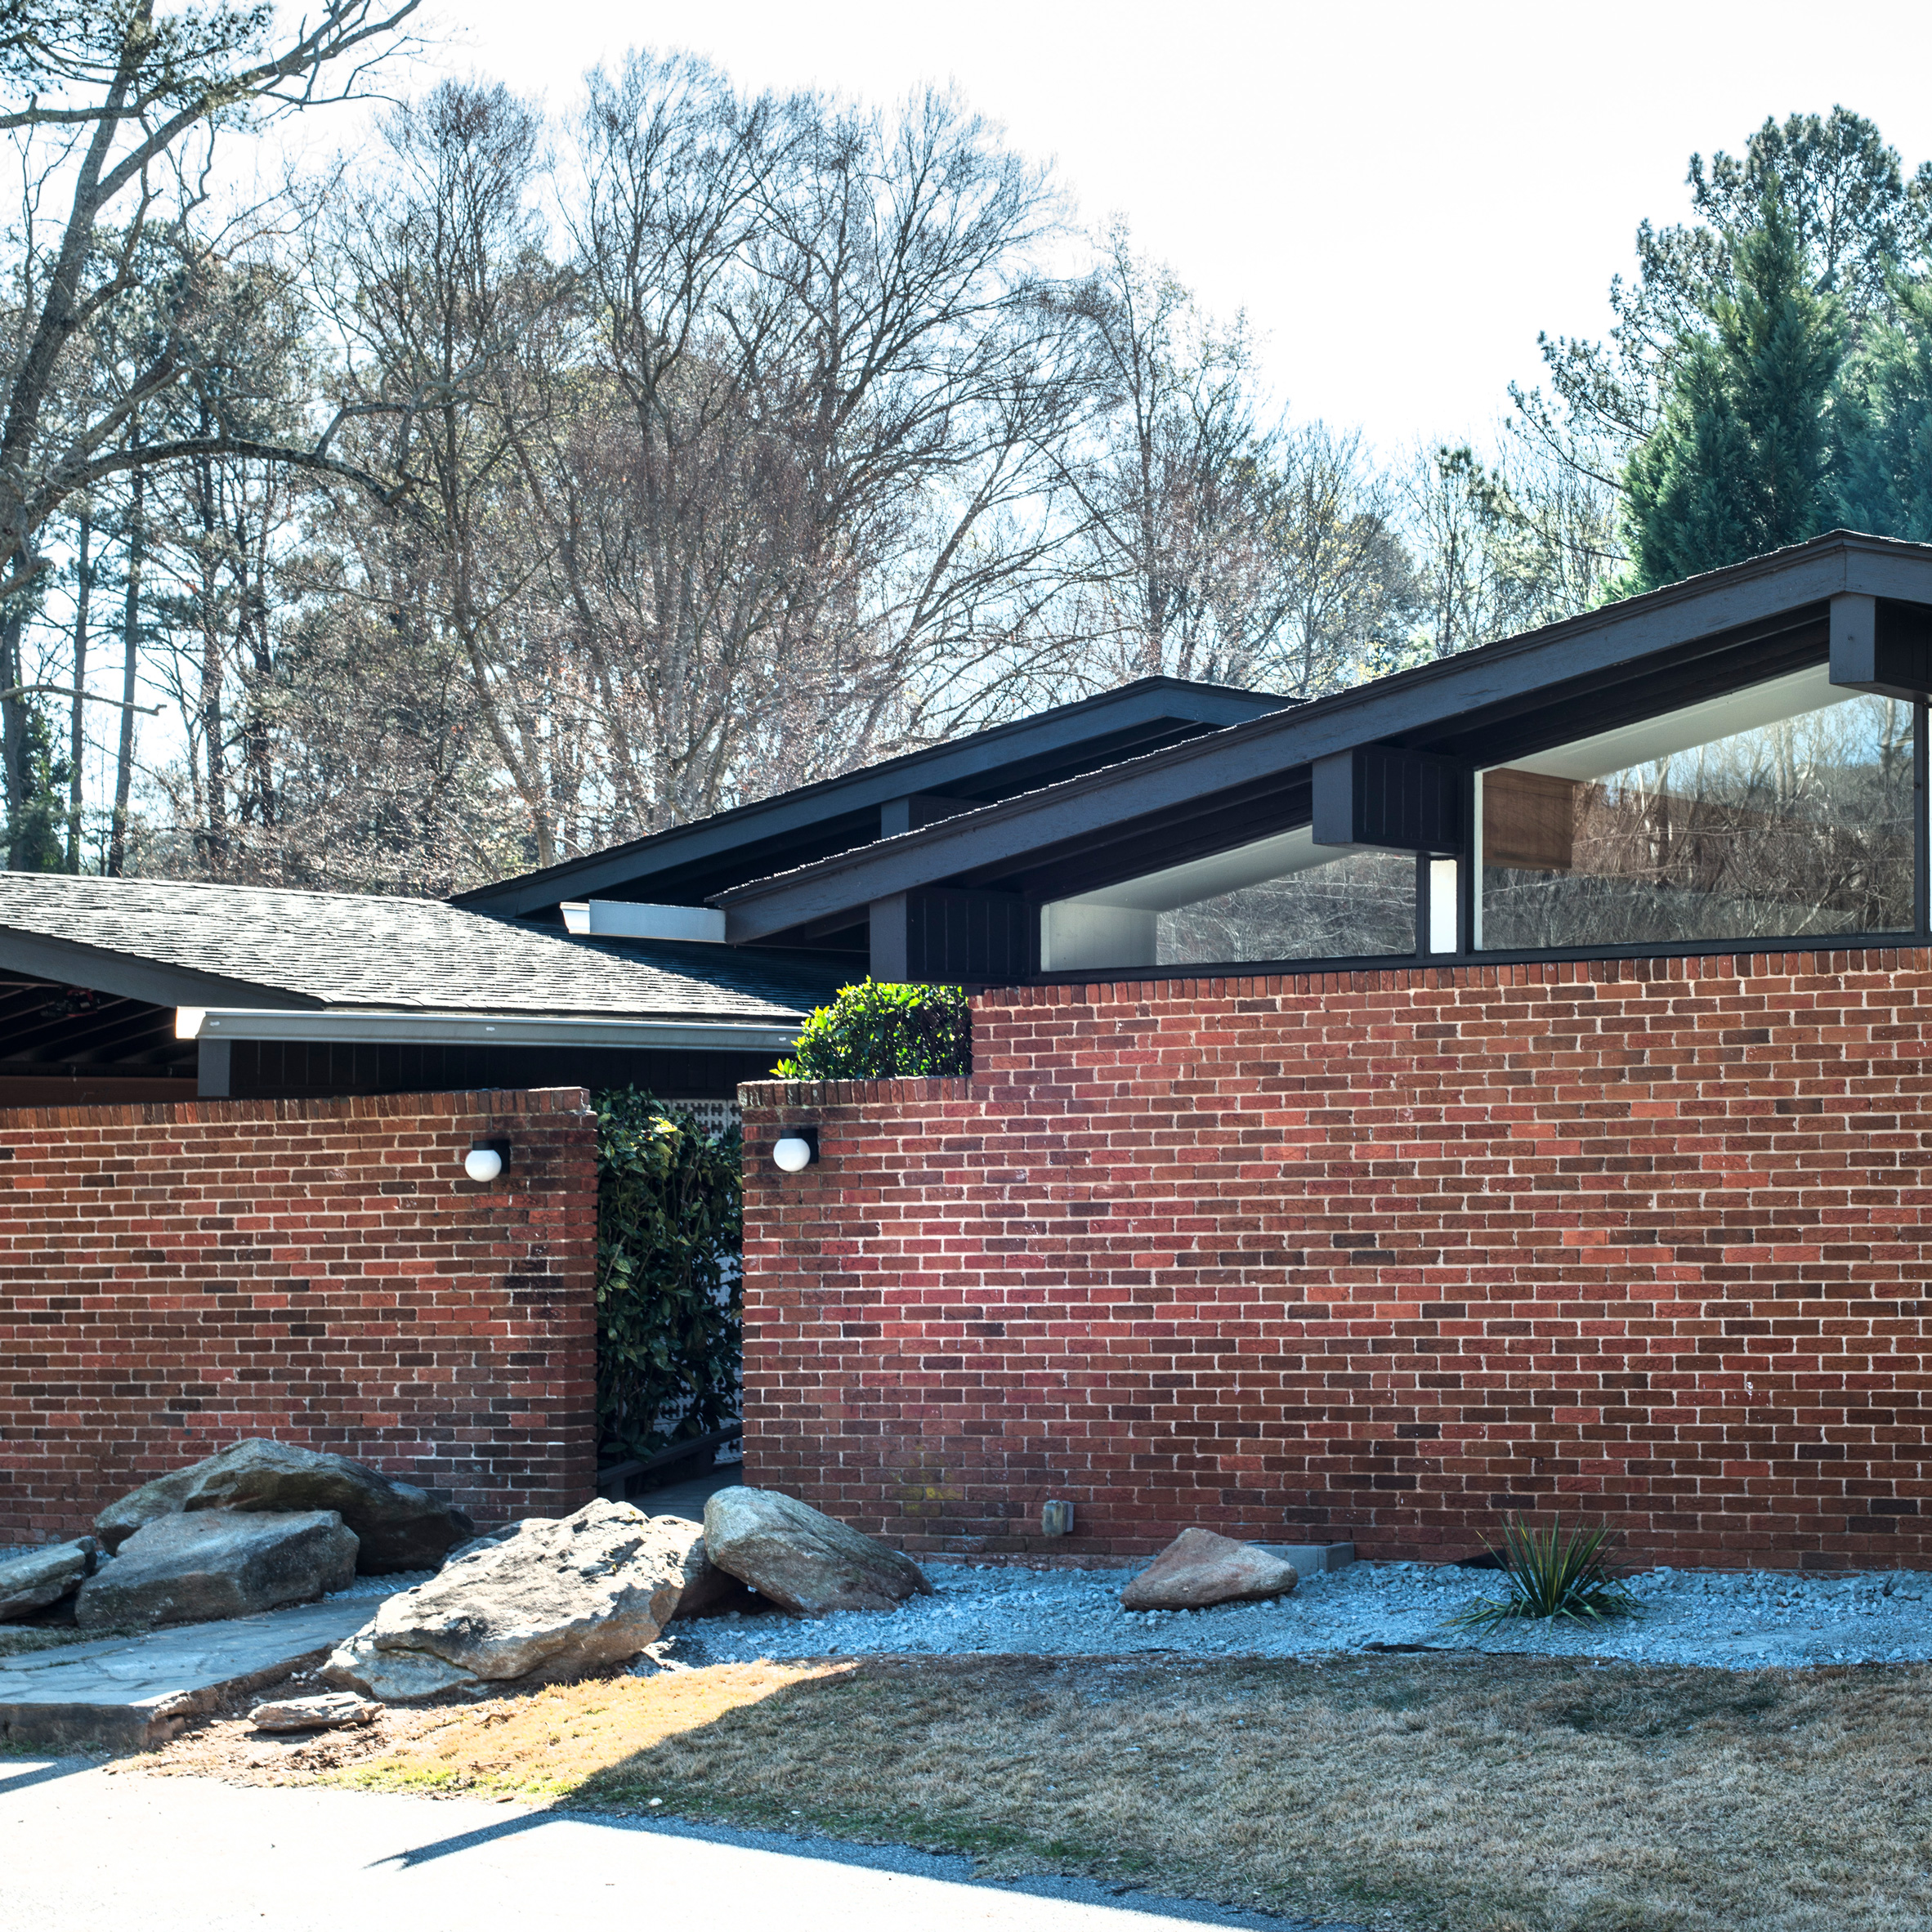 Lowery, renovated by Farris Built Contemporaries and Handcrafted Homes